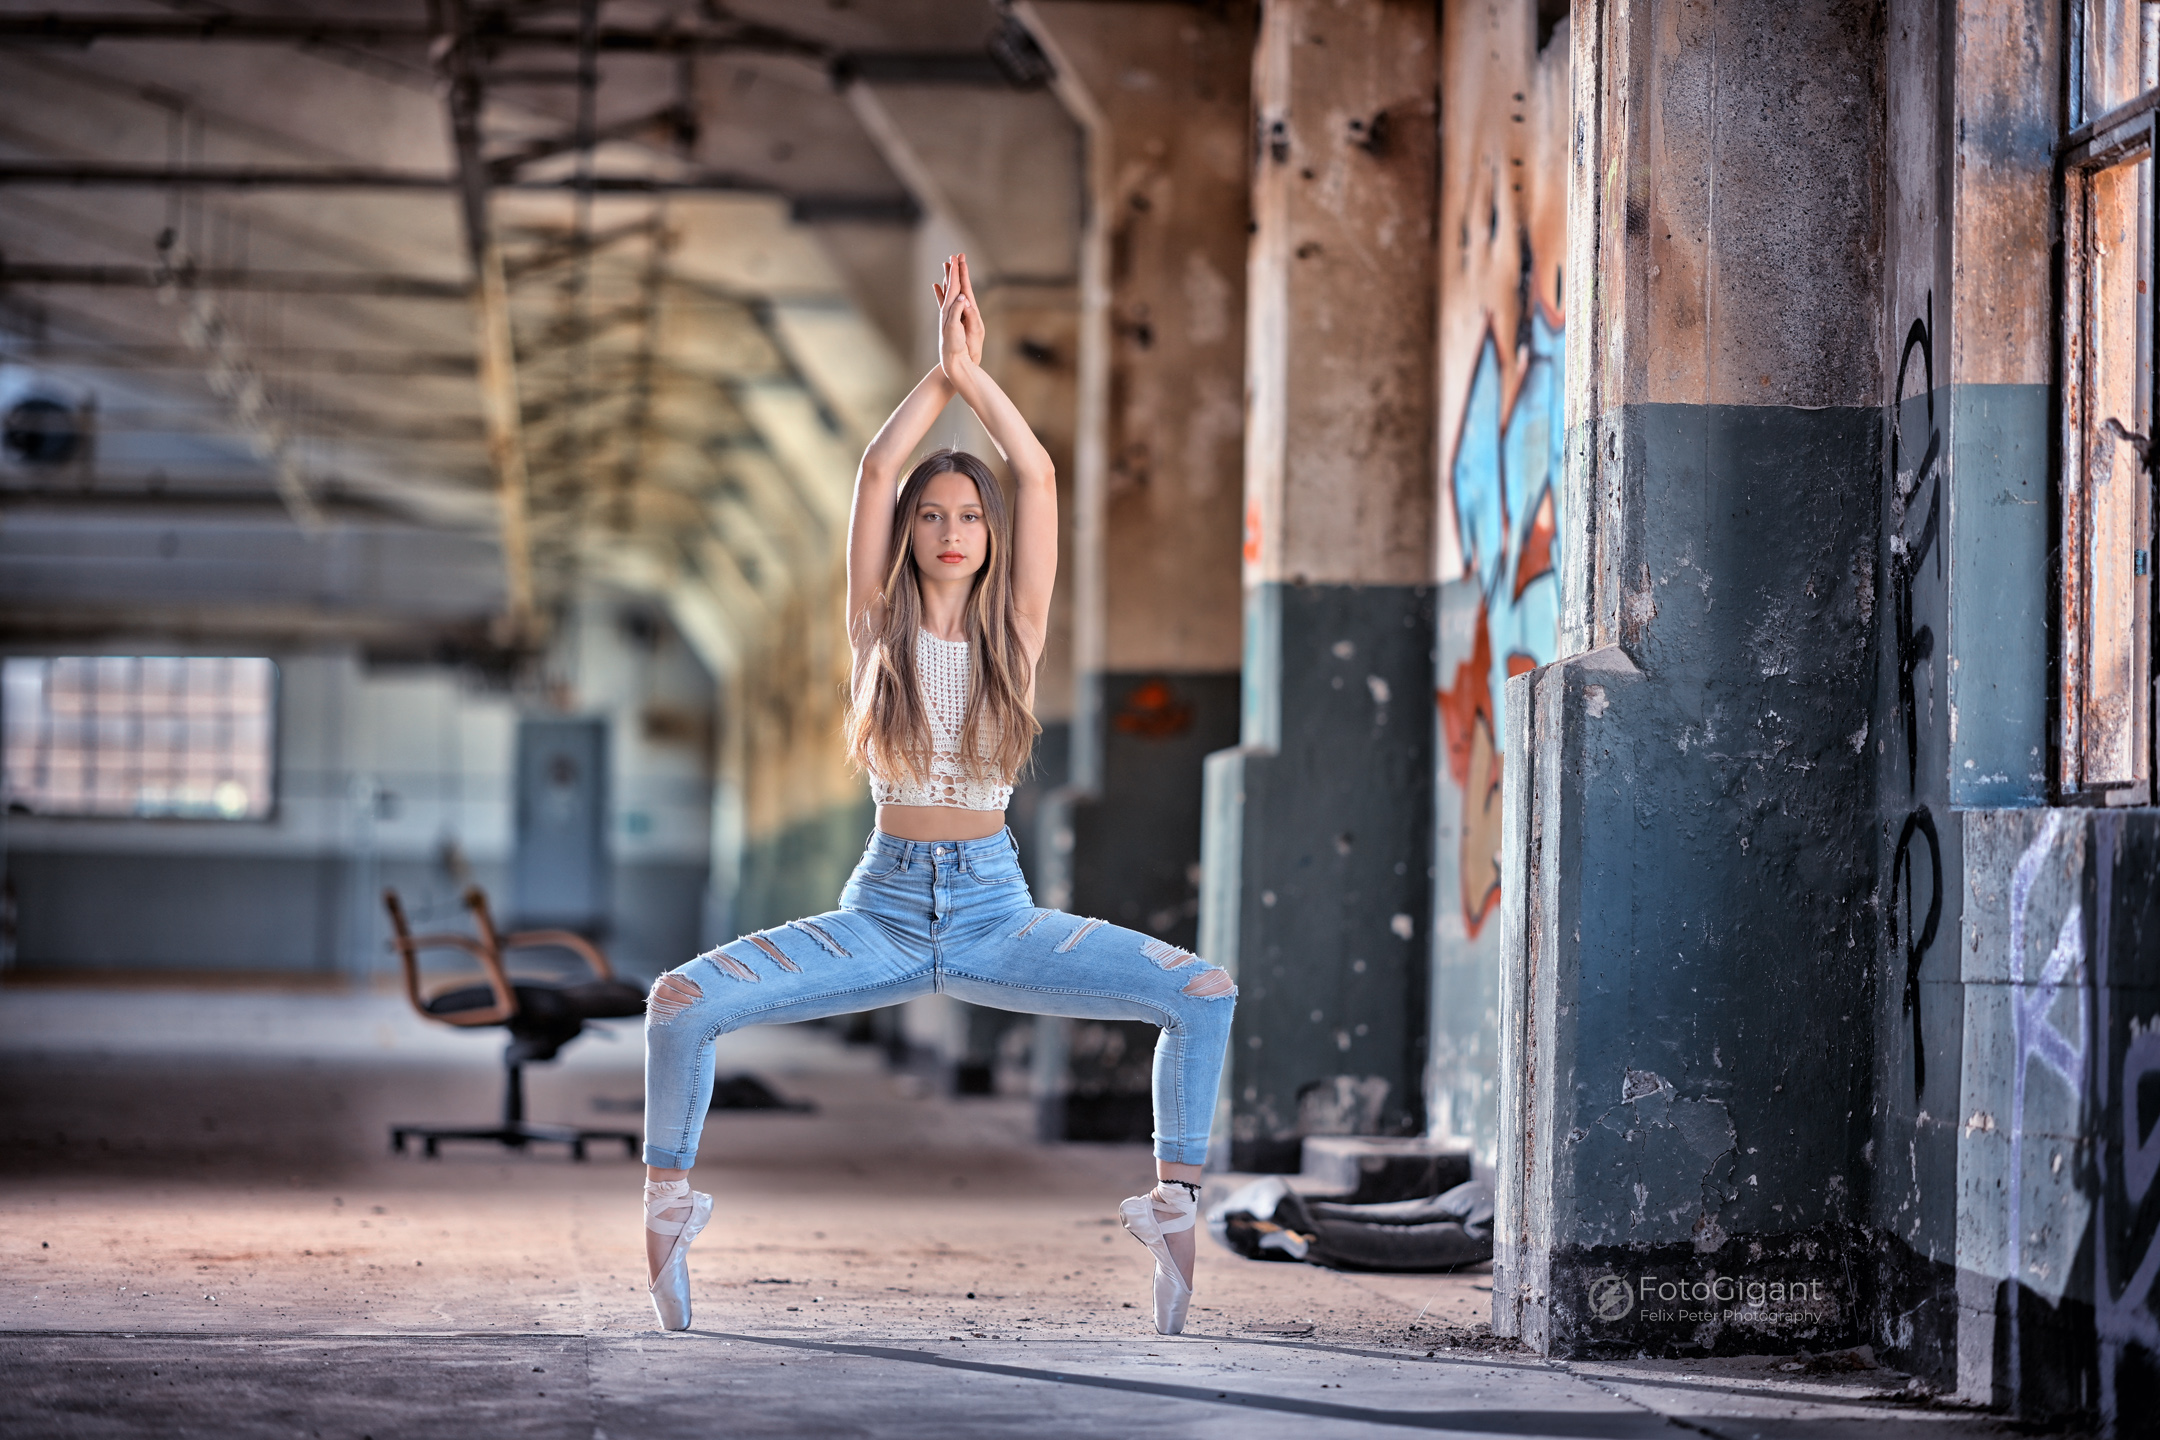 Balletdancer_in_Lostplace_01.jpg